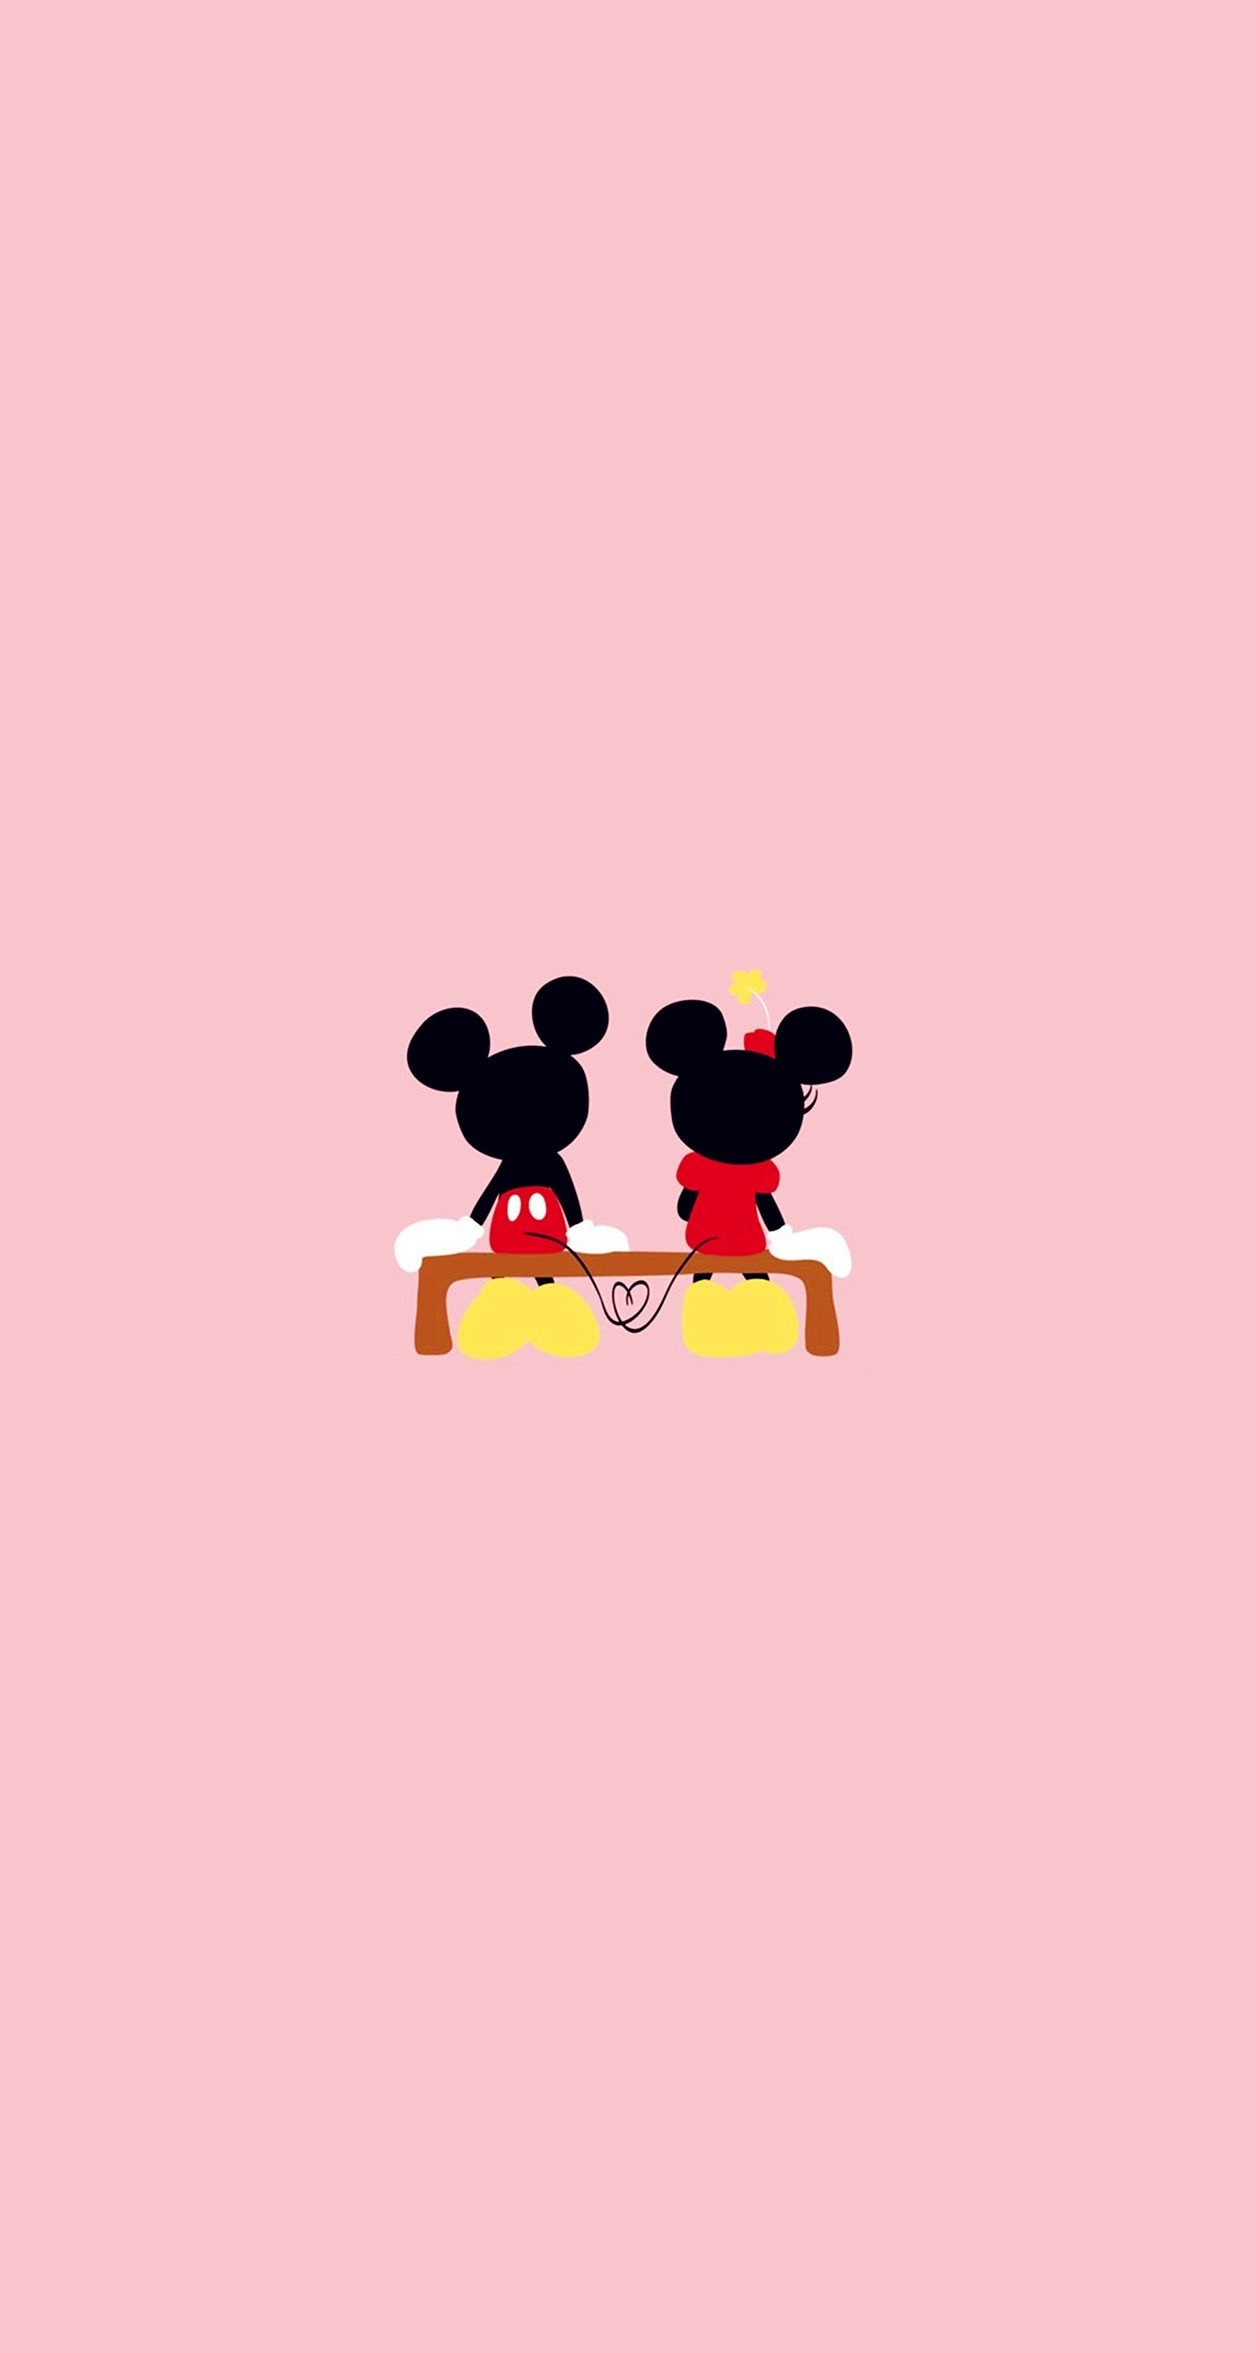 Mickey and minnie wallpaper wallpapertag - Minnie mouse wallpaper pinterest ...